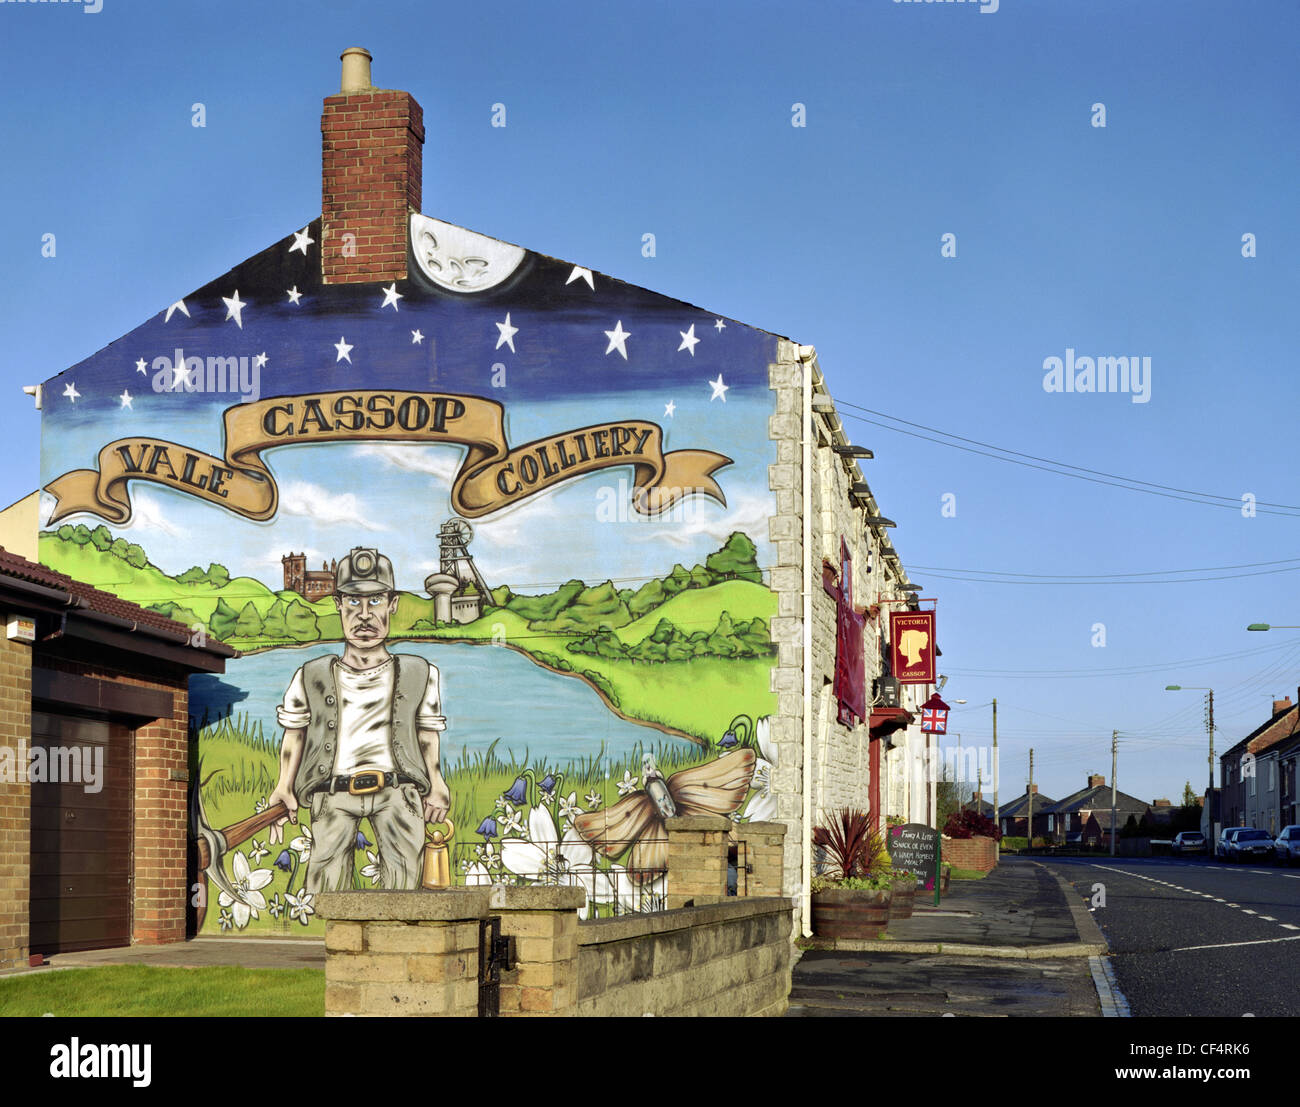 Cassop Vale Colliery mural at the end of the Victoria Inn pub. Stock Photo